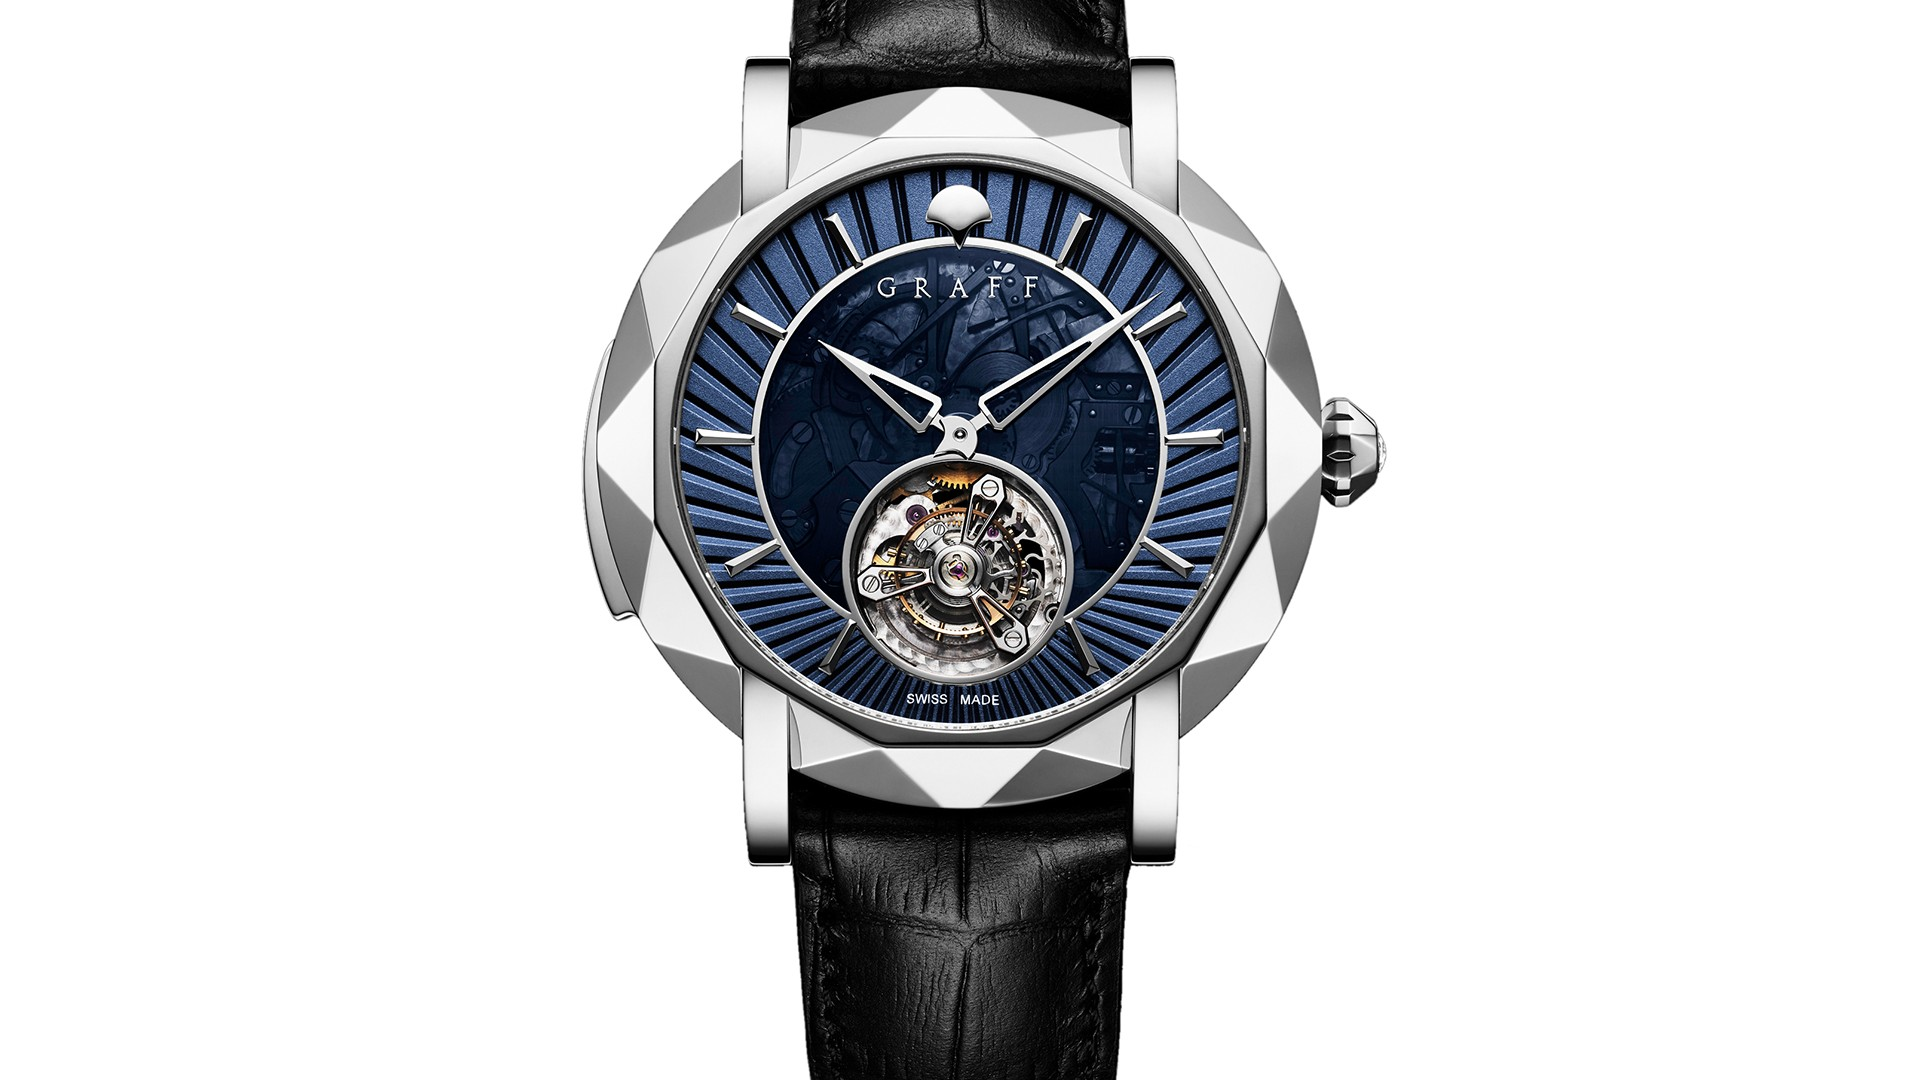 Graff MasterGraff Minute Repeater watch